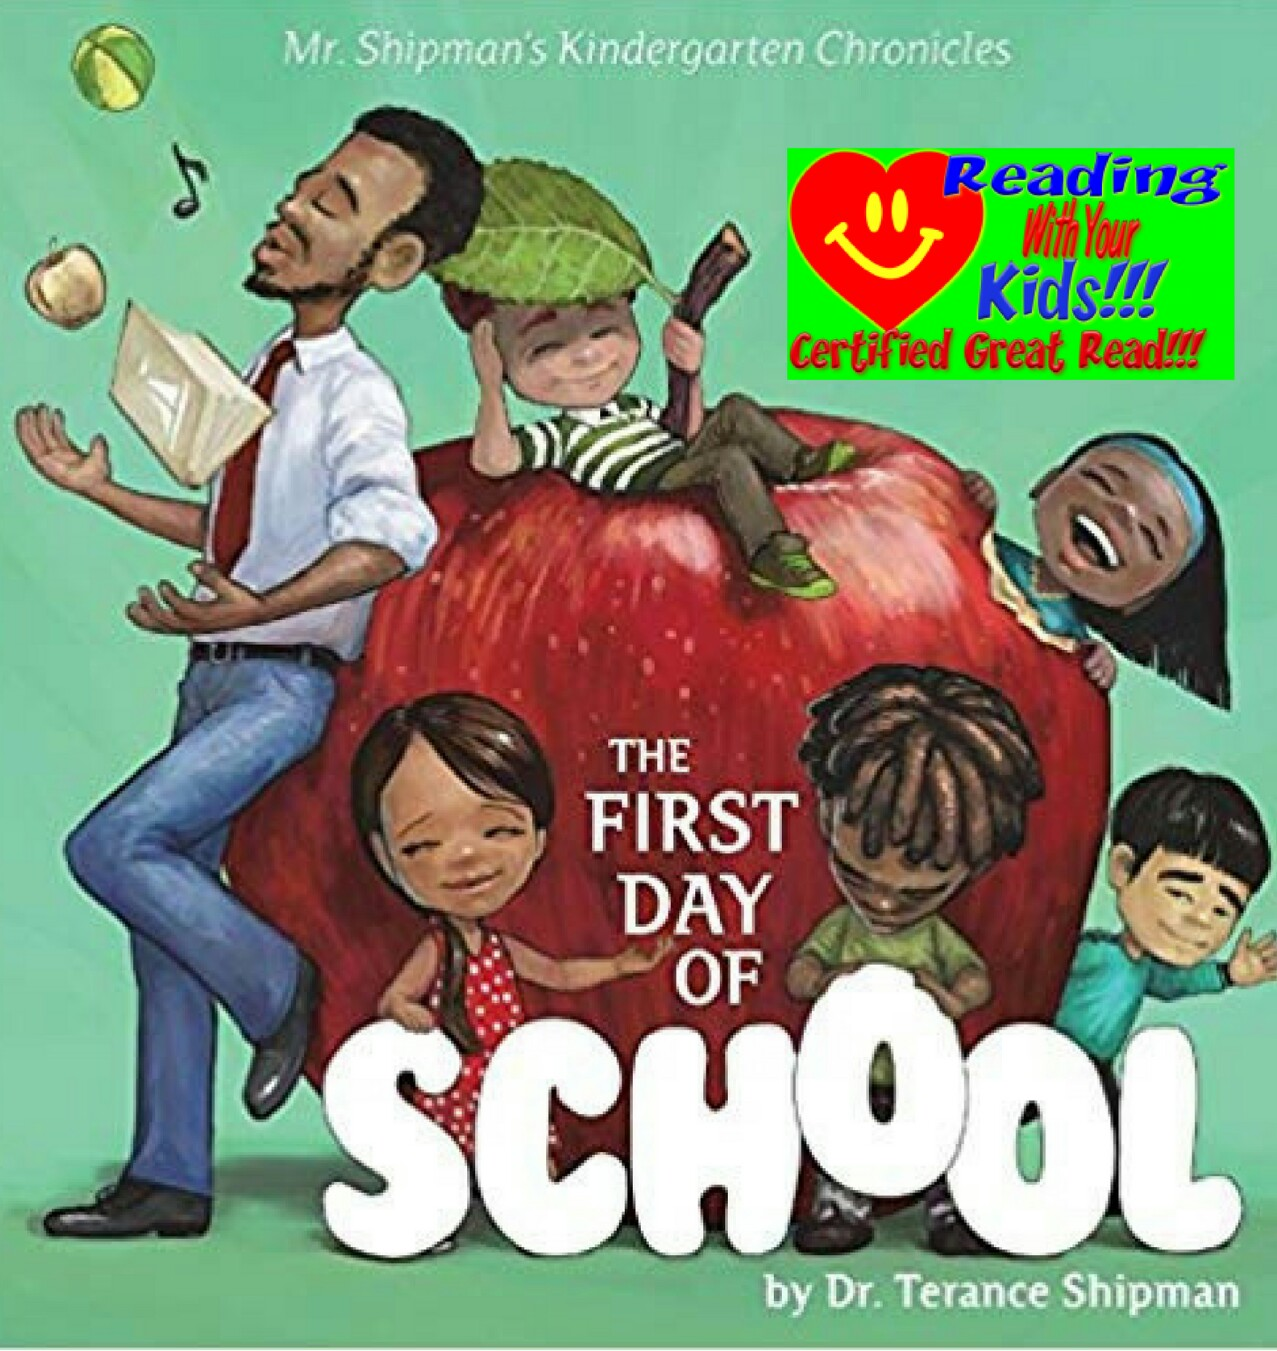 Mr. Shipman's Kindergarten Chronicles The First Day of School by Dr. Terance Shipman